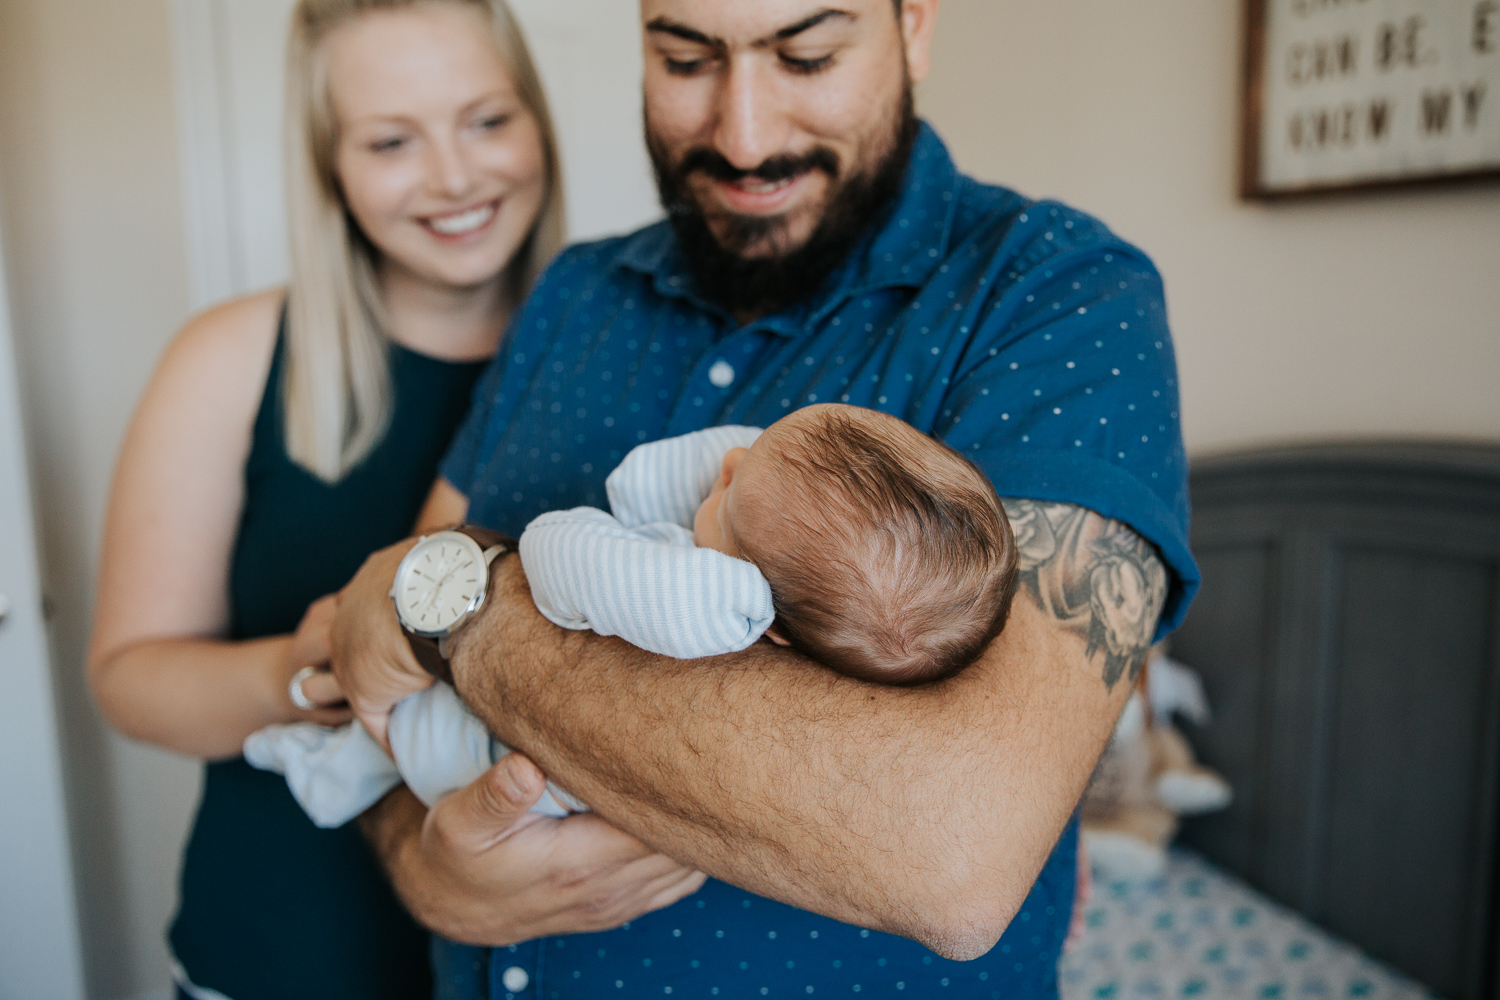 first time parents standing in nursery, dad holding sleeping 2 week old baby boy - Newmarket In-Home Photos